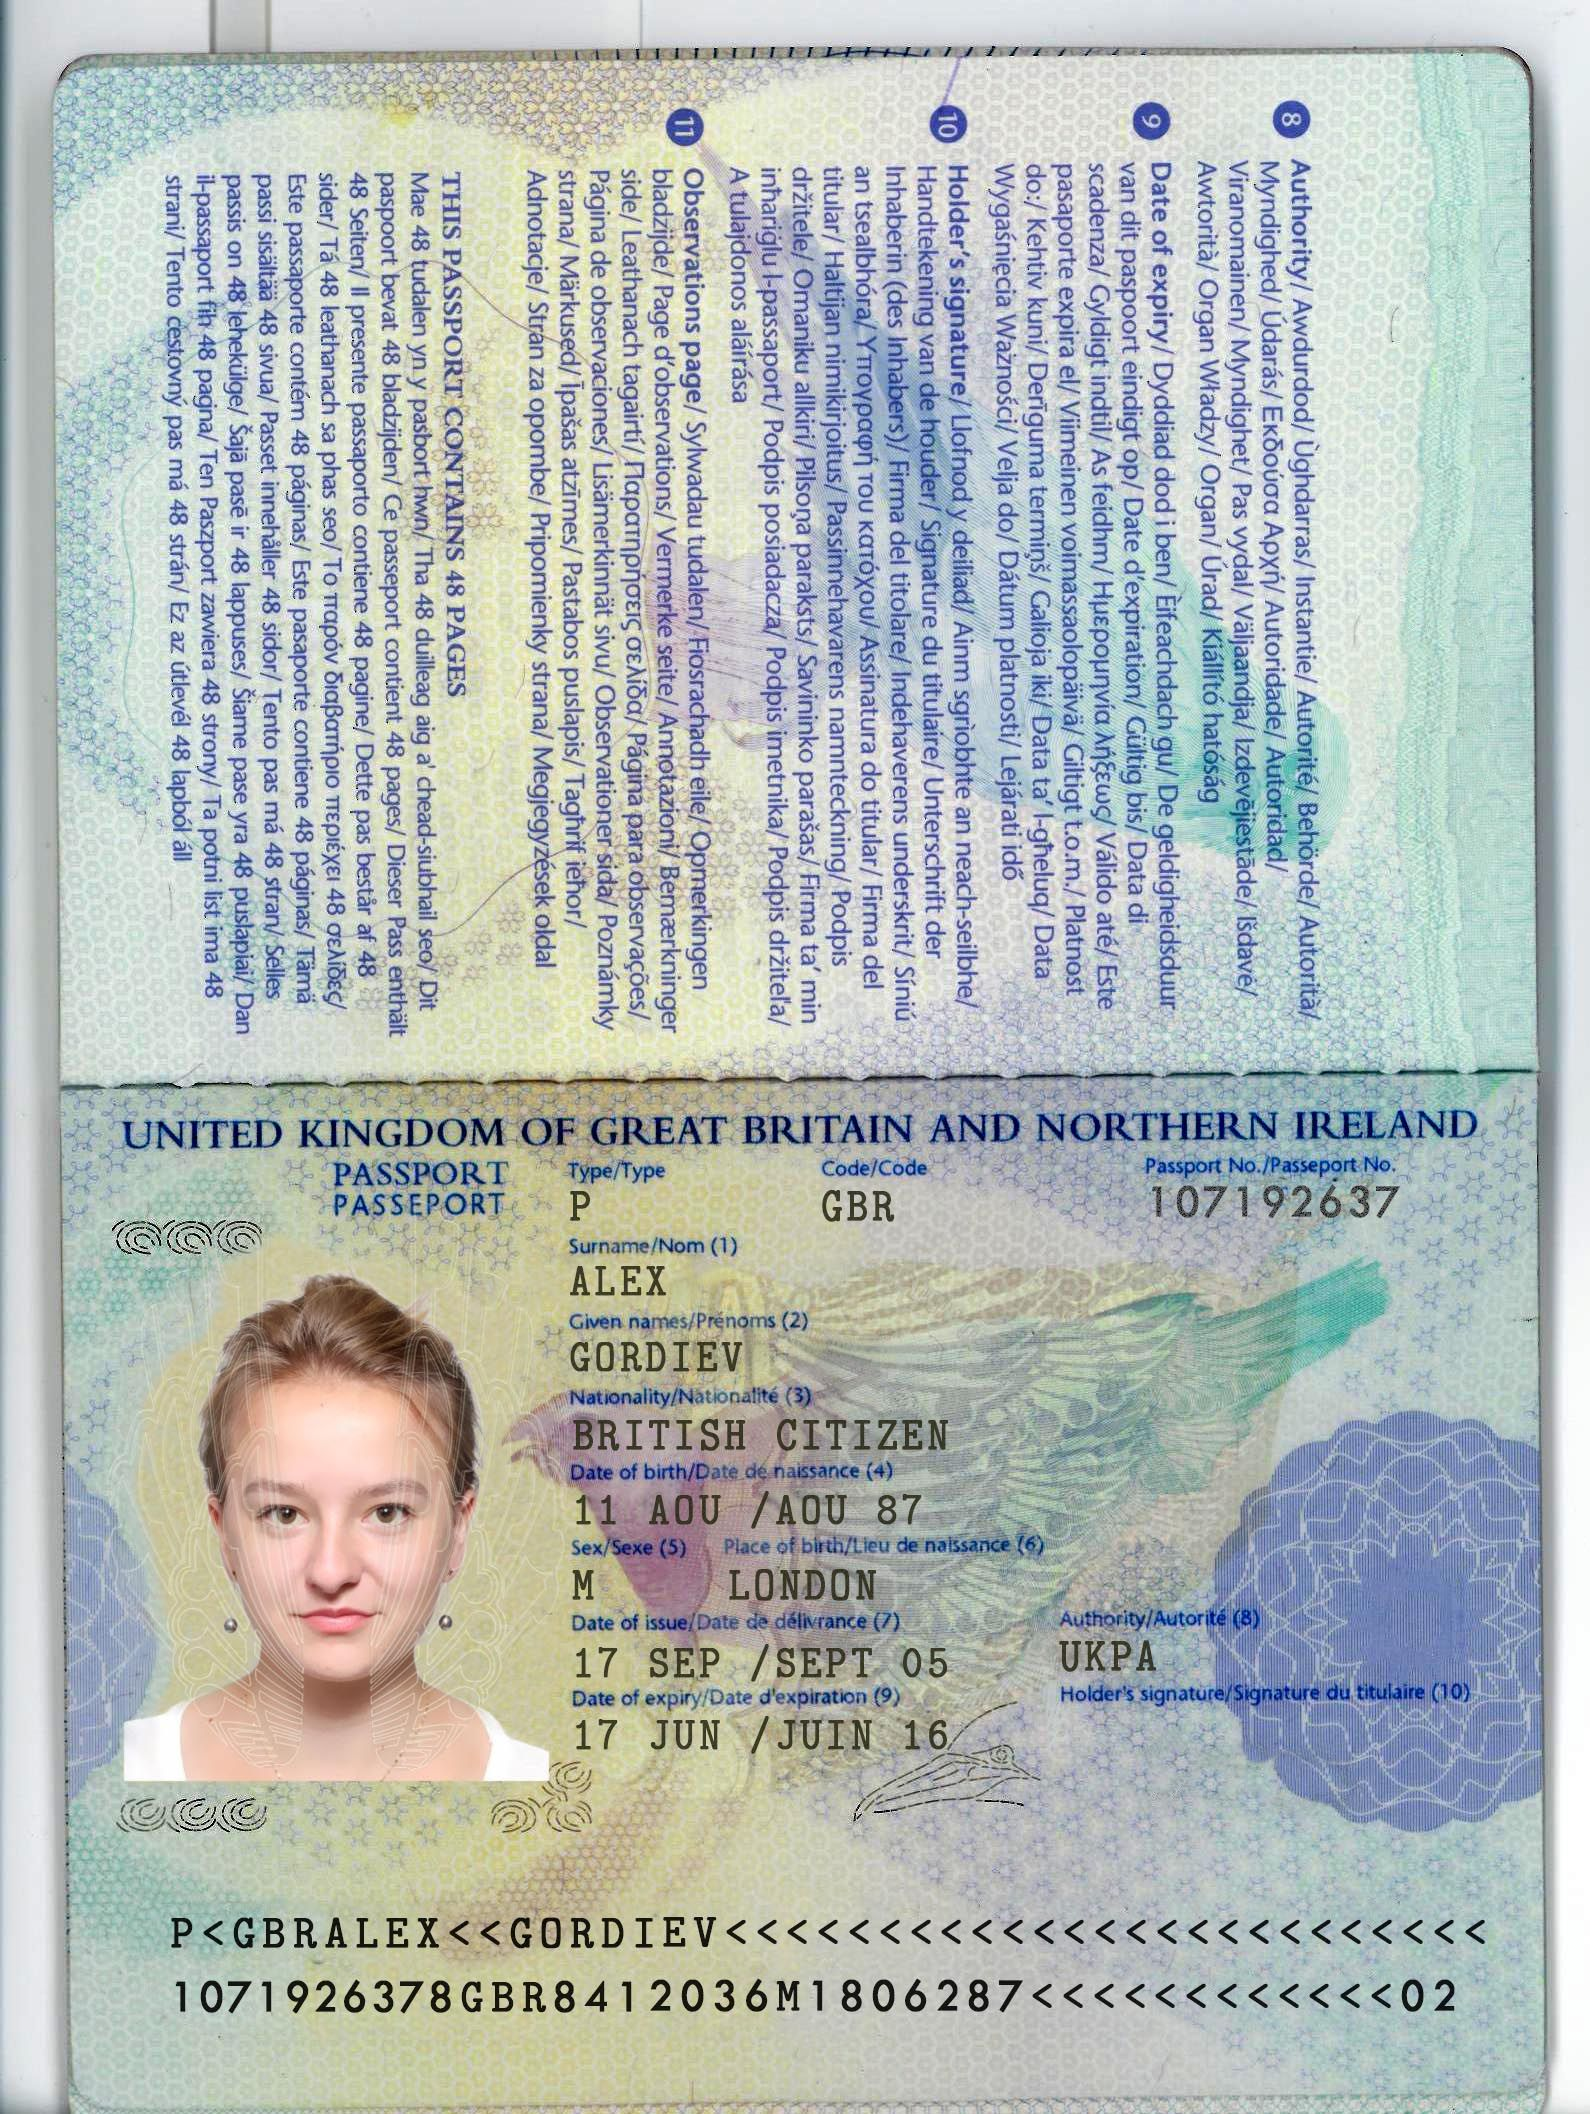 955ee38d86d1814ff421568e64709424 - How To Get A Passport Without A Birth Certificate Uk